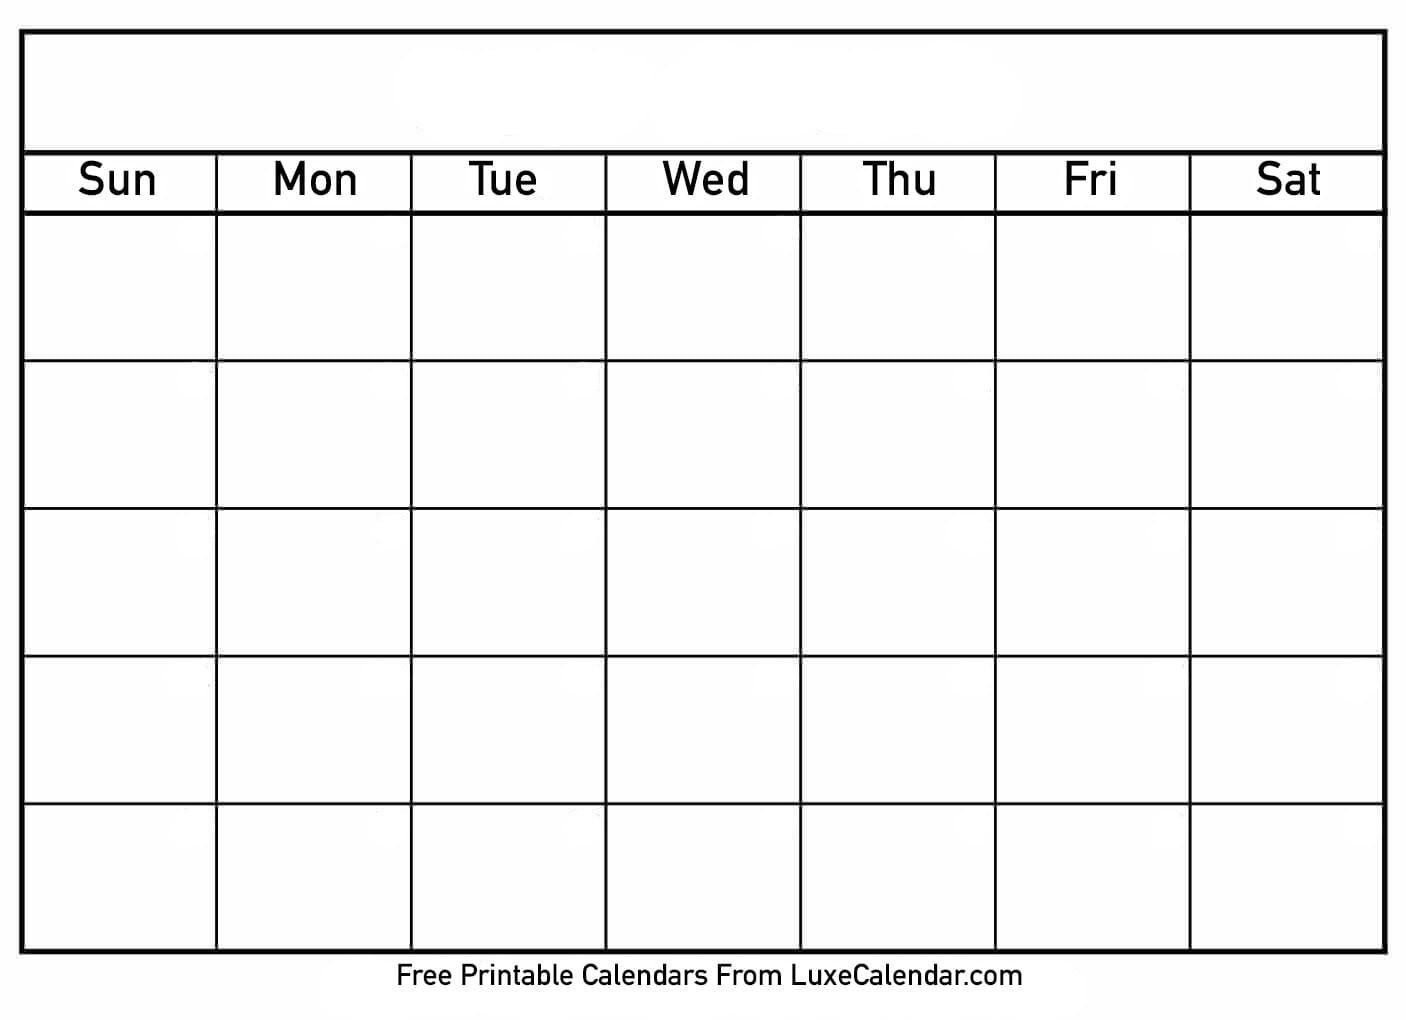 Schedule Template Blank Calendar With S Printable Daily Print For